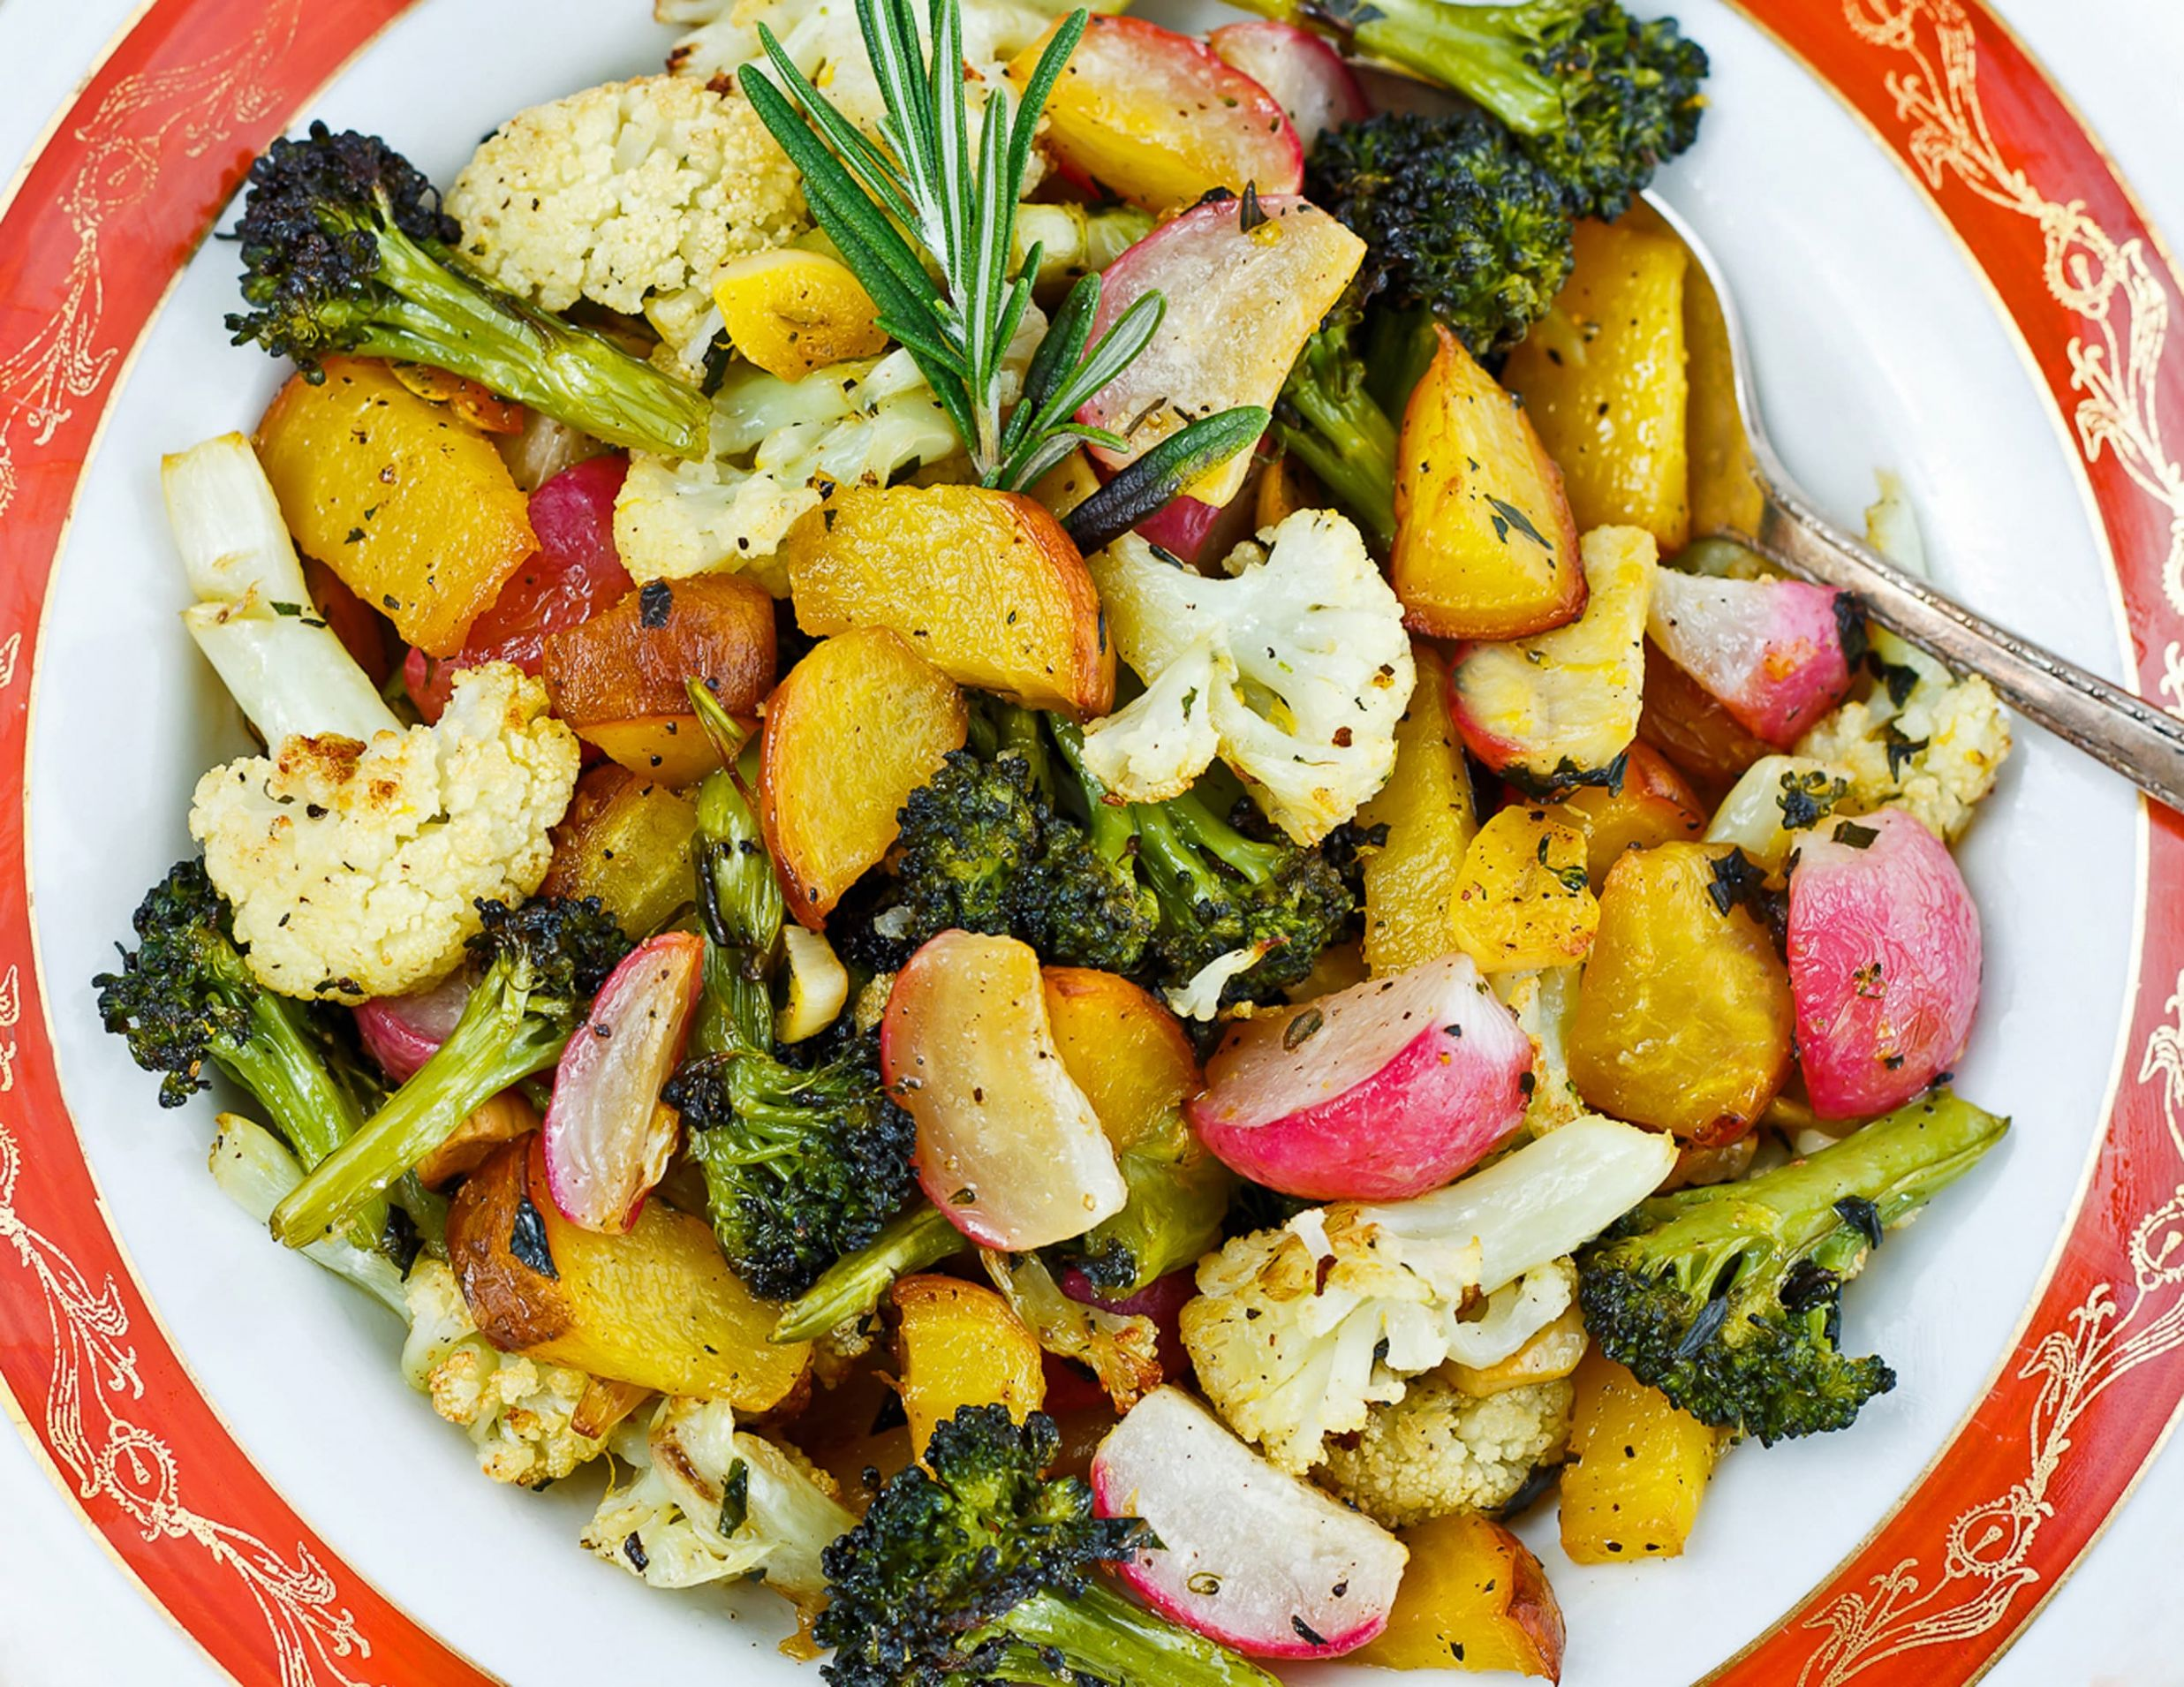 Roasted Vegetable Medley with Rosemary and Thyme - Recipes Vegetable Medley